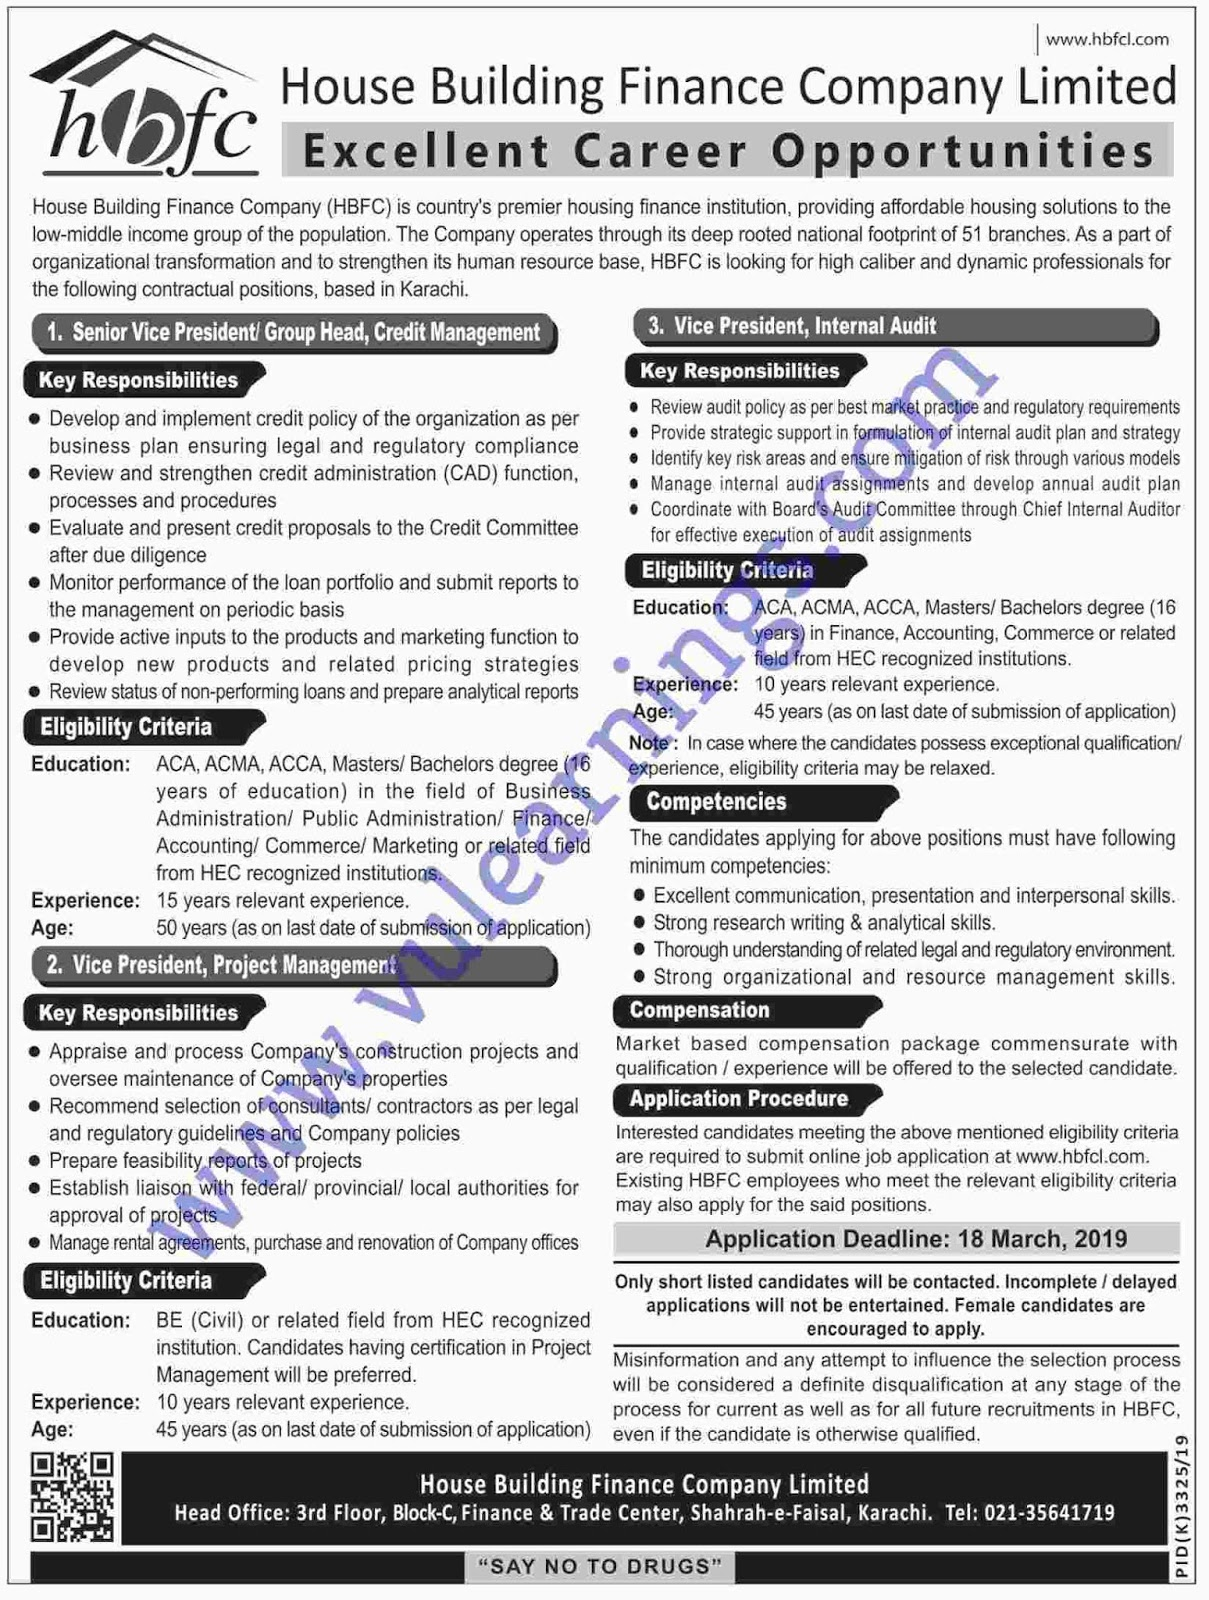 Job in House Building Finance Company Limited